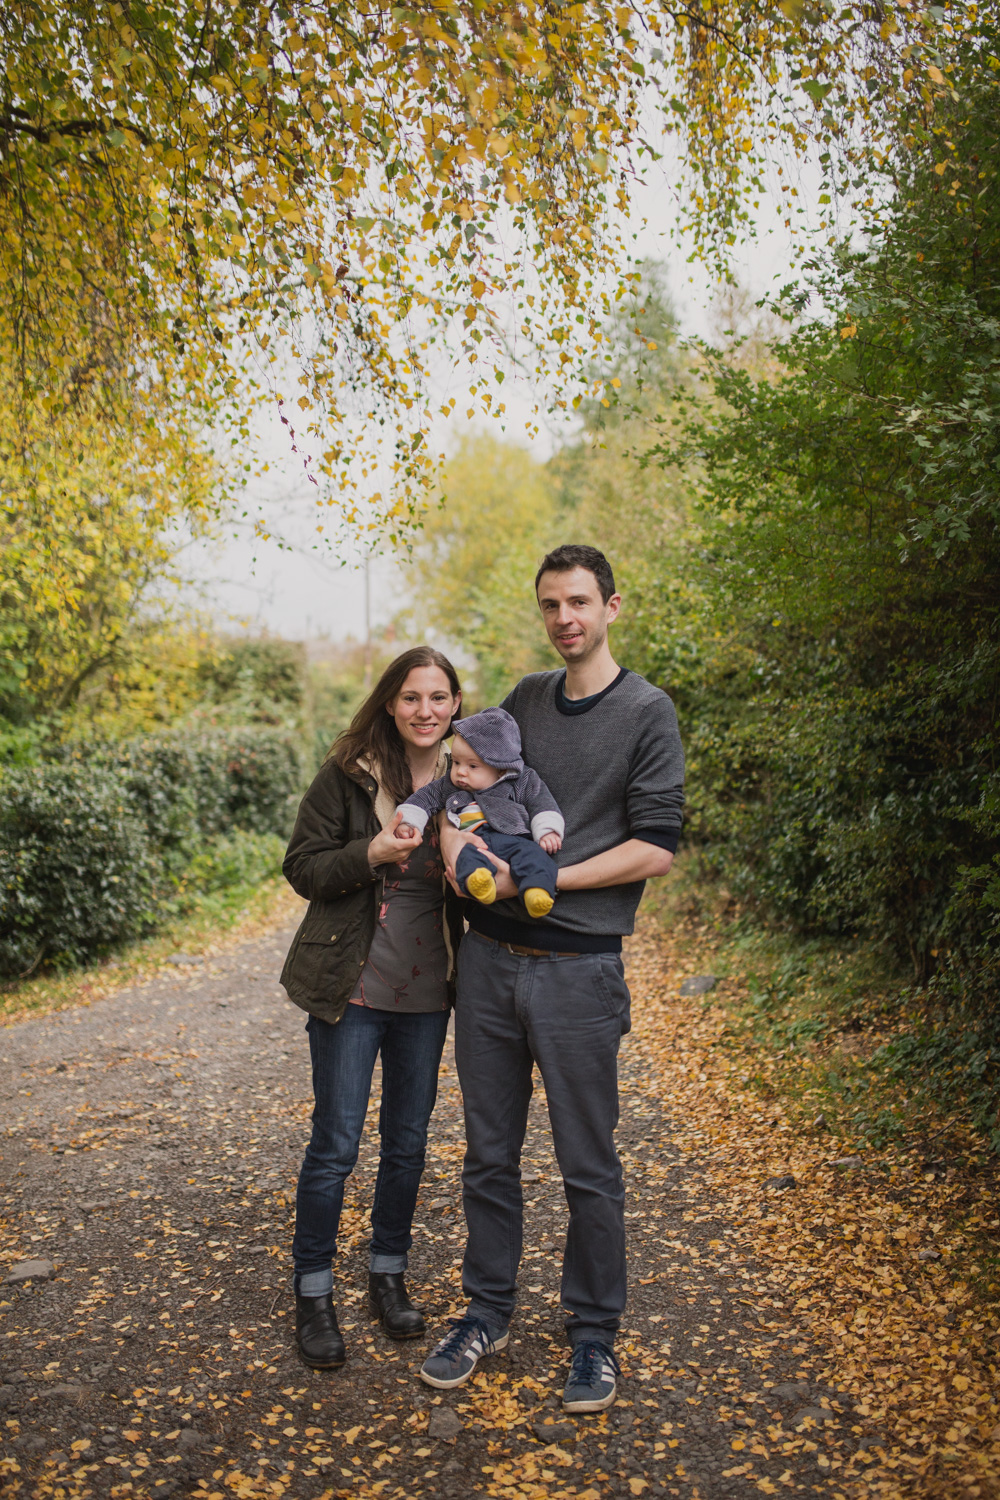 Shrewsbury_Family_Photography_Shropshire-9.jpg